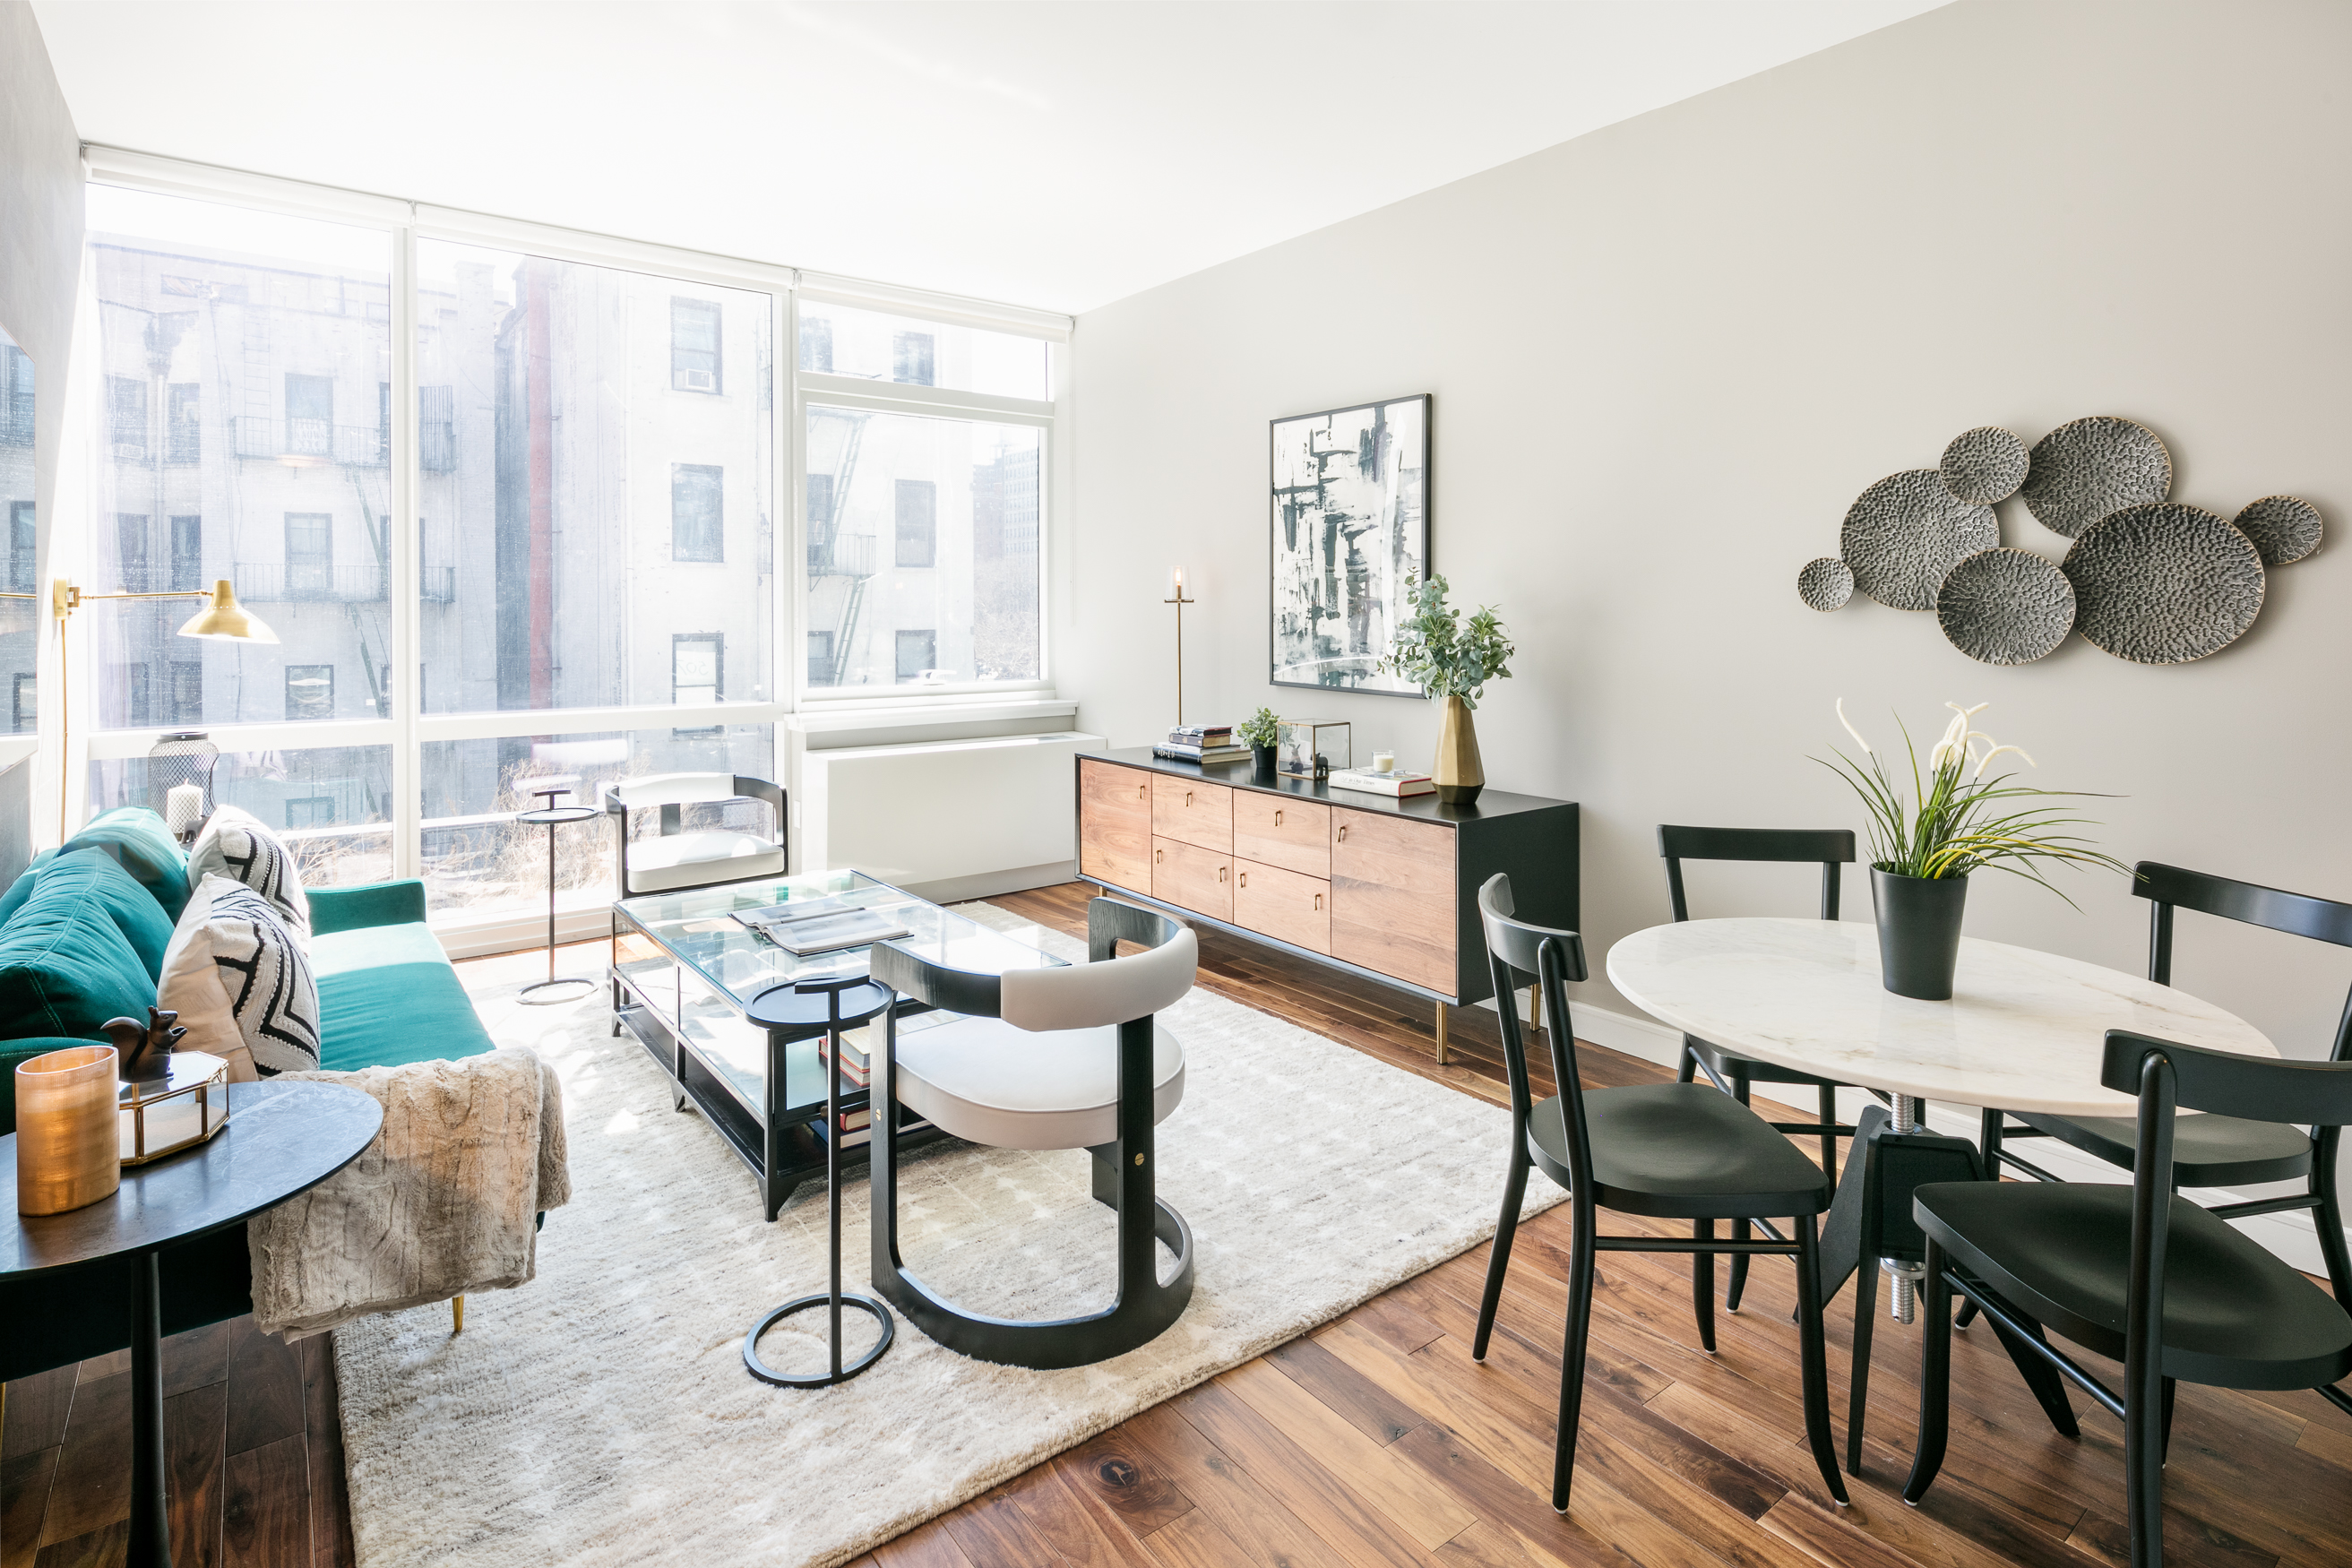 ... Find At 507 West Chelseau0027s (as This Project Is Known) Rentals Include  Kitchens With Stainless Steel Backsplashes And Caesarstone Quartz  Countertops; ...